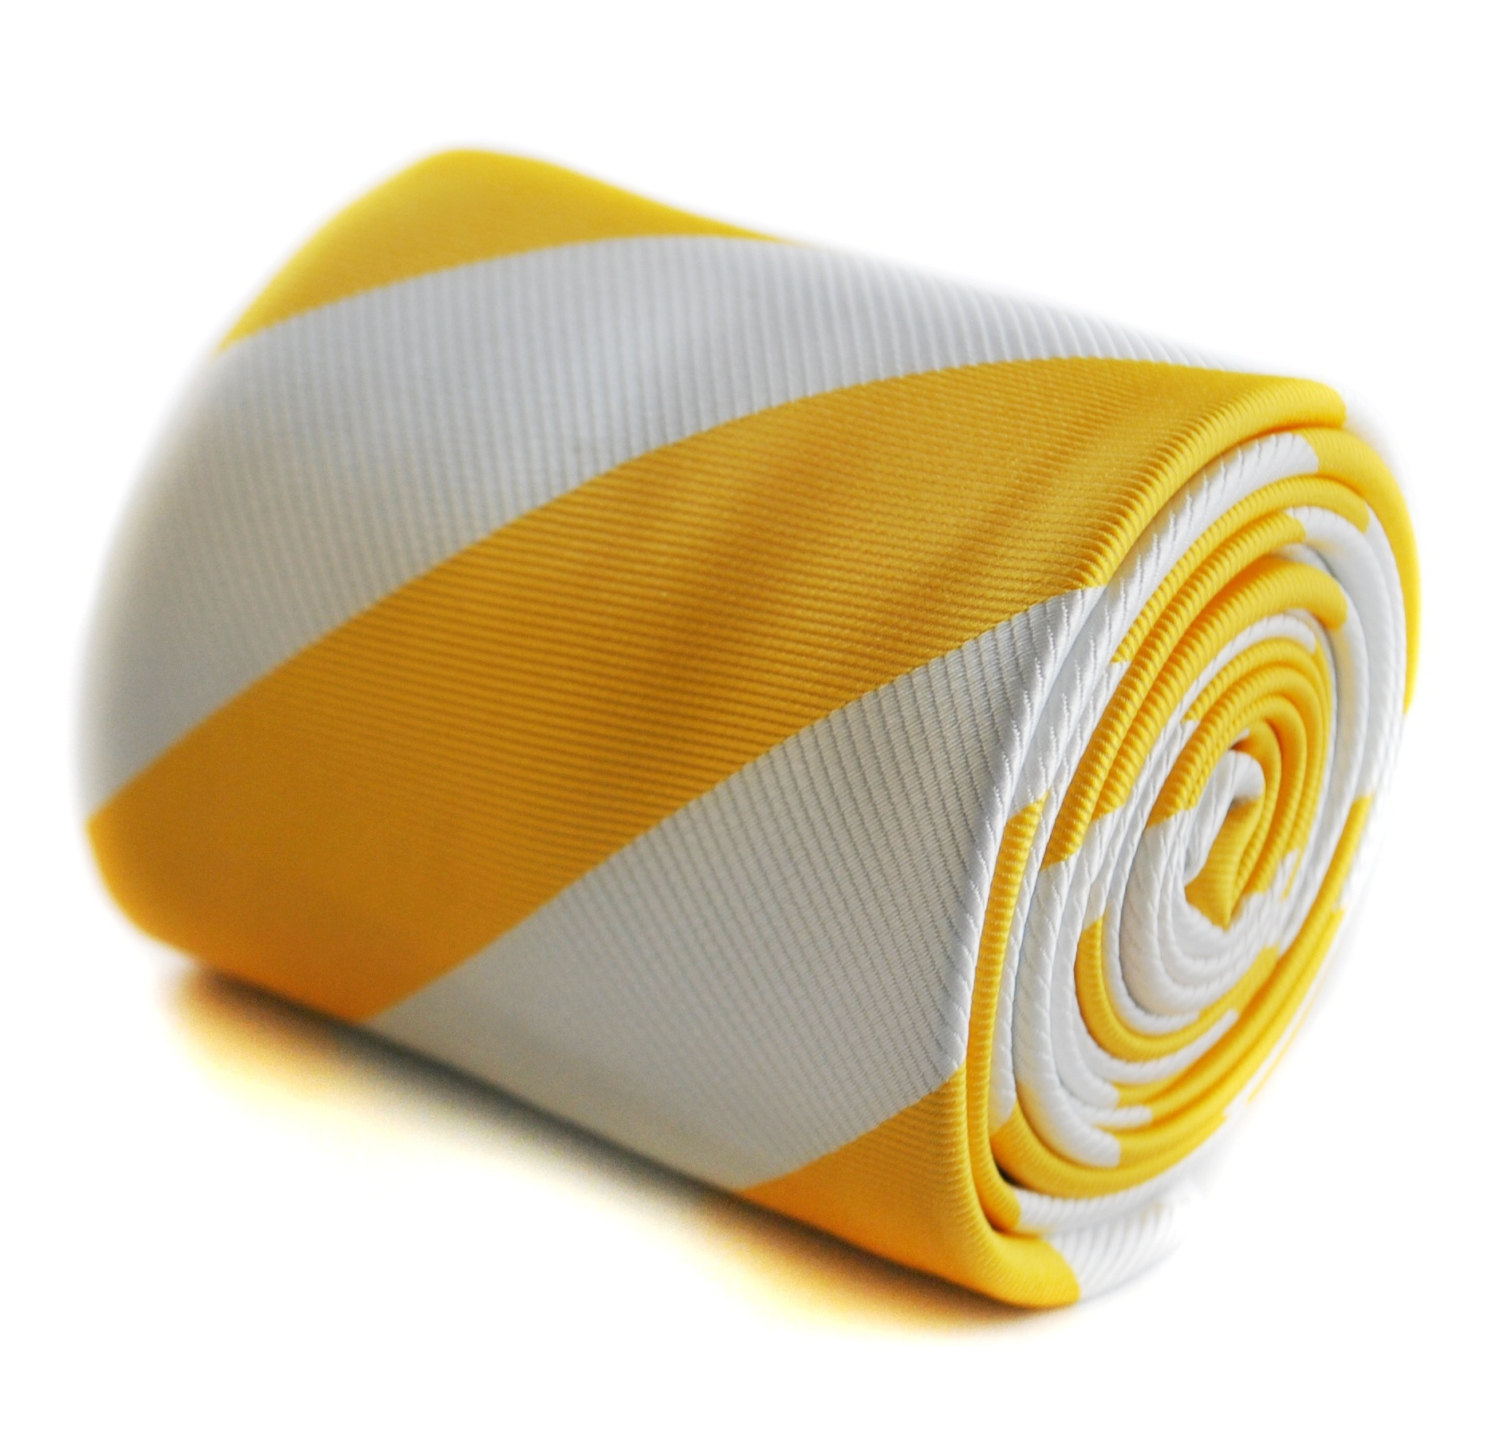 yellow and white barber striped tie with floral design to the rear by Frederick